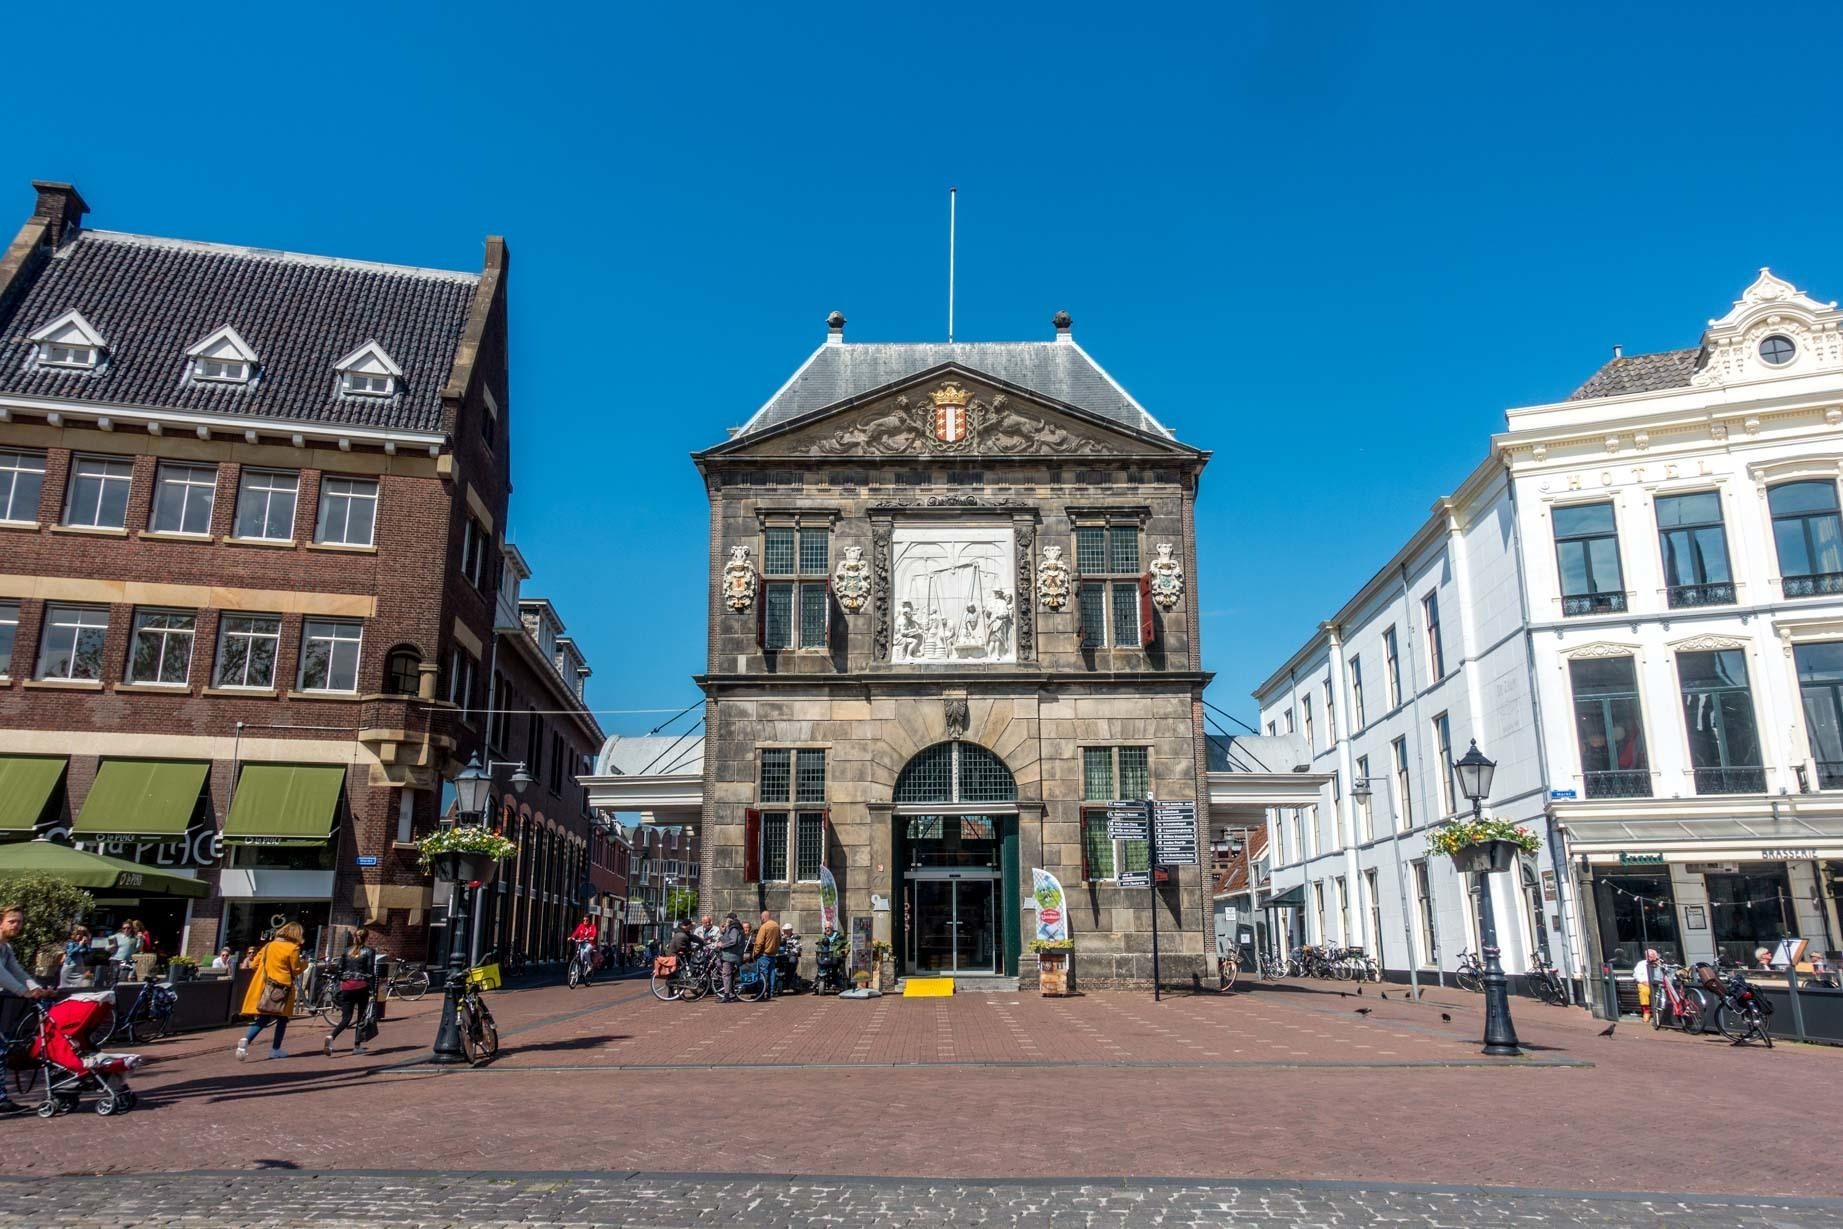 De Goudse Waag, or the Weigh House, is the home of the Gouda Cheese Museum